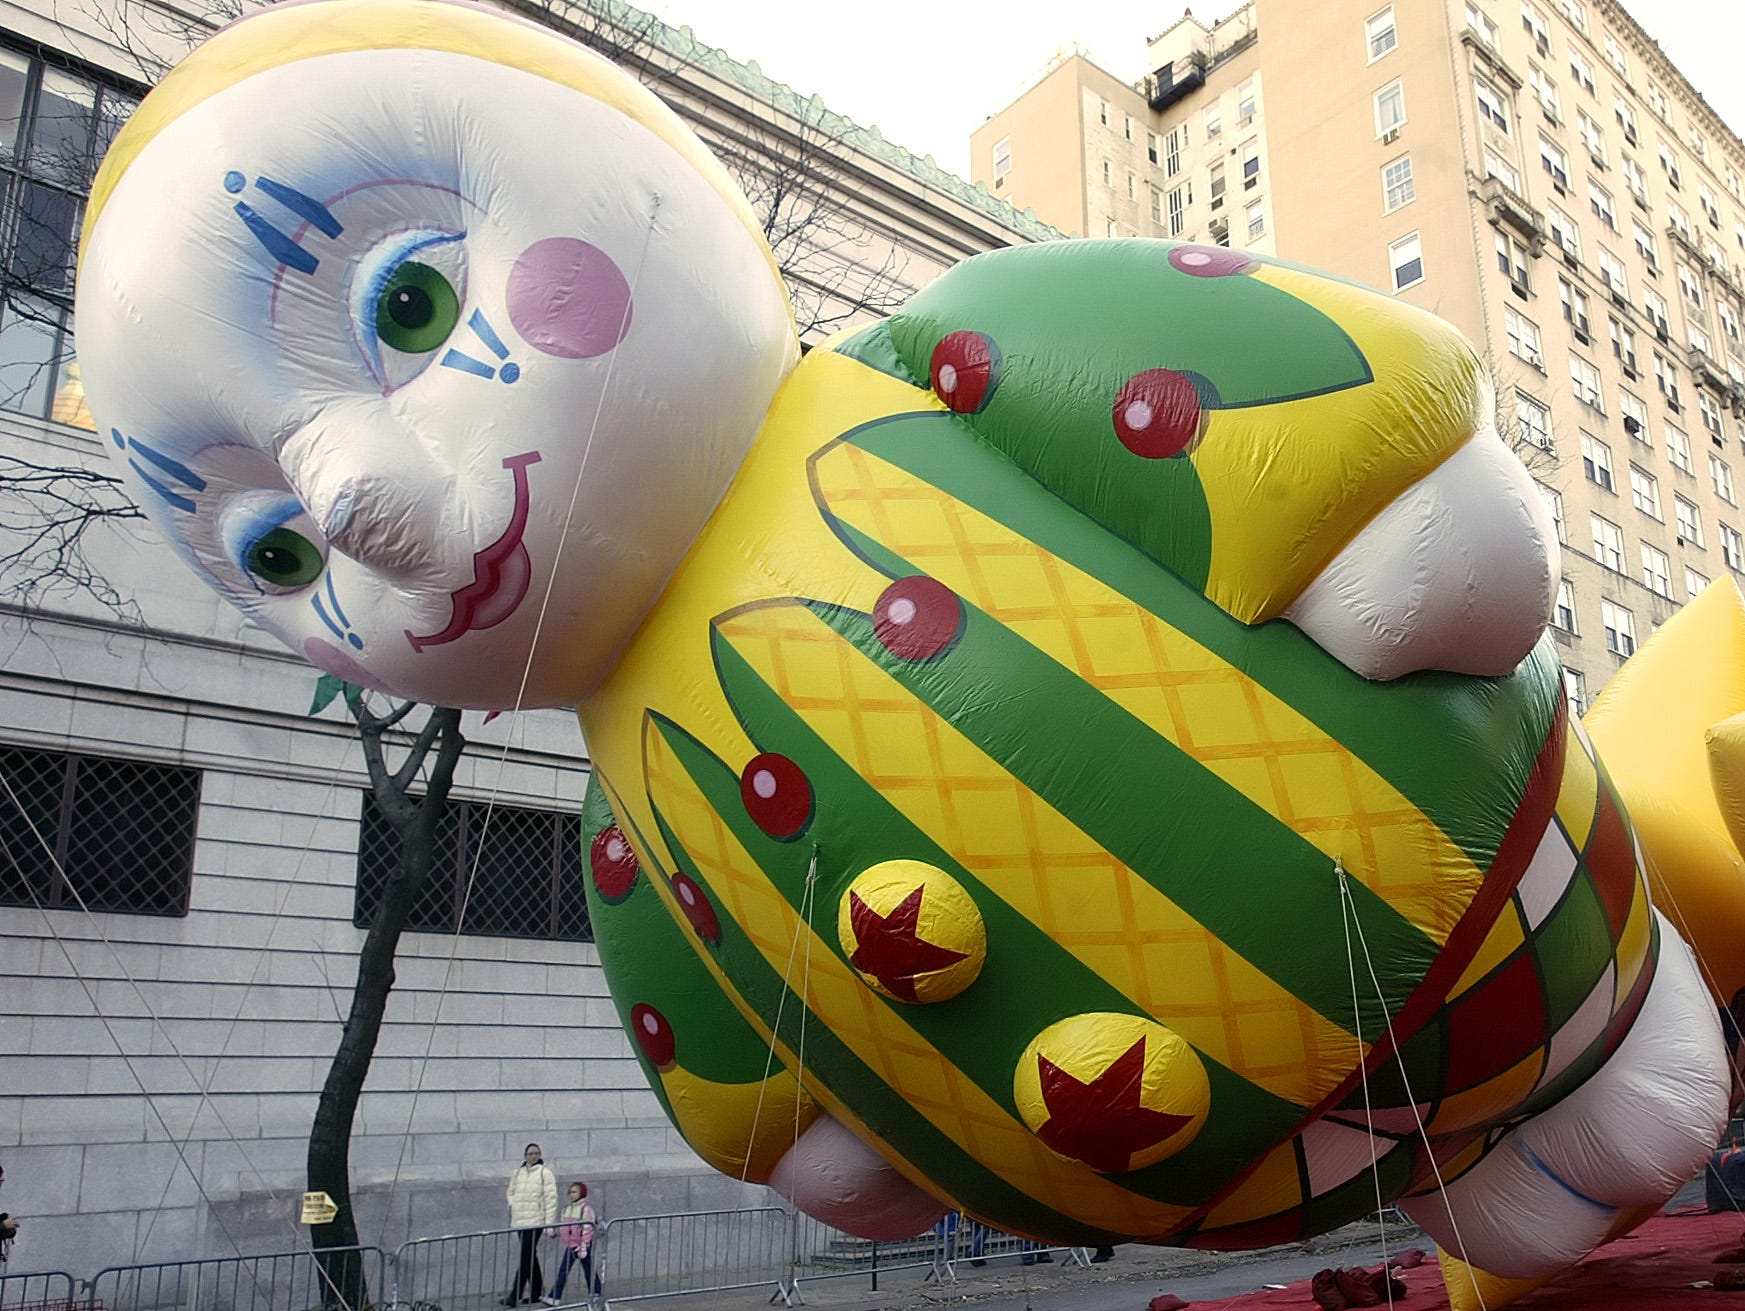 A balloon sits tethered to weights as people pass the day before the Macy's Parade in New York Wednesday, Nov. 23, 2005. Balloon workers were busy Wednesday, as the readied the balloons for tomorrow's 79th Macy's Parade, which will feature 14 giant balloons, 37 smaller ones and 27 floats.   (AP Photo/Gregory Bull)